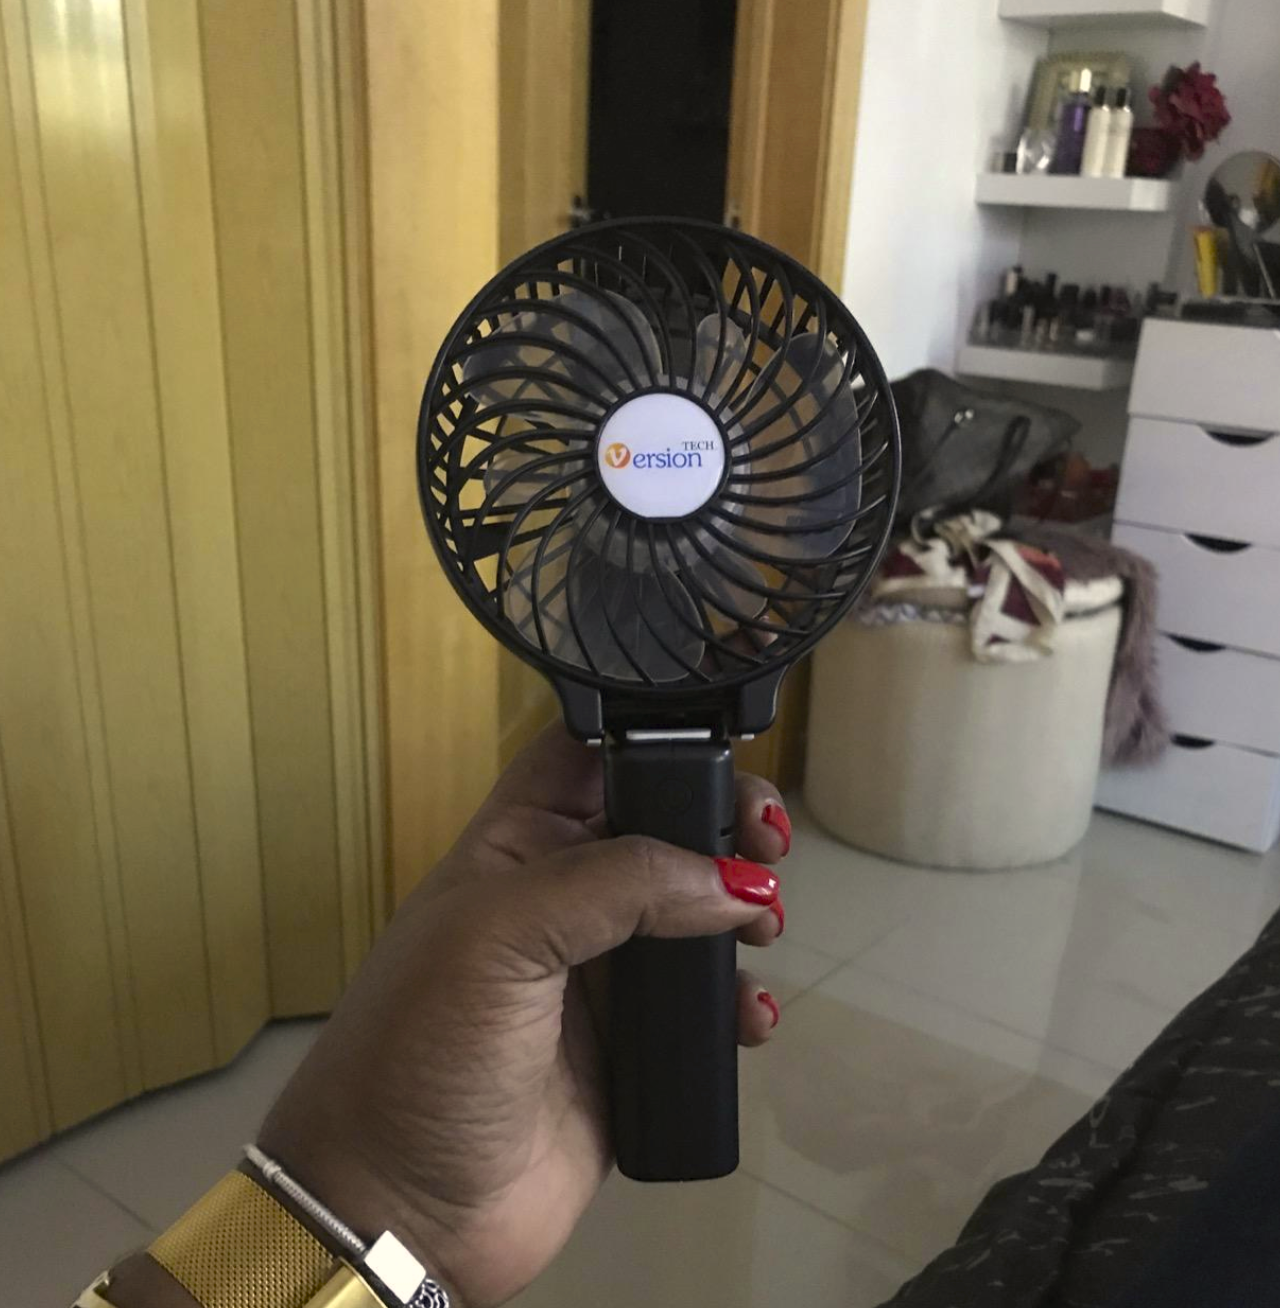 reviewer's hand holding the fan which is circular on the fan end has a handle